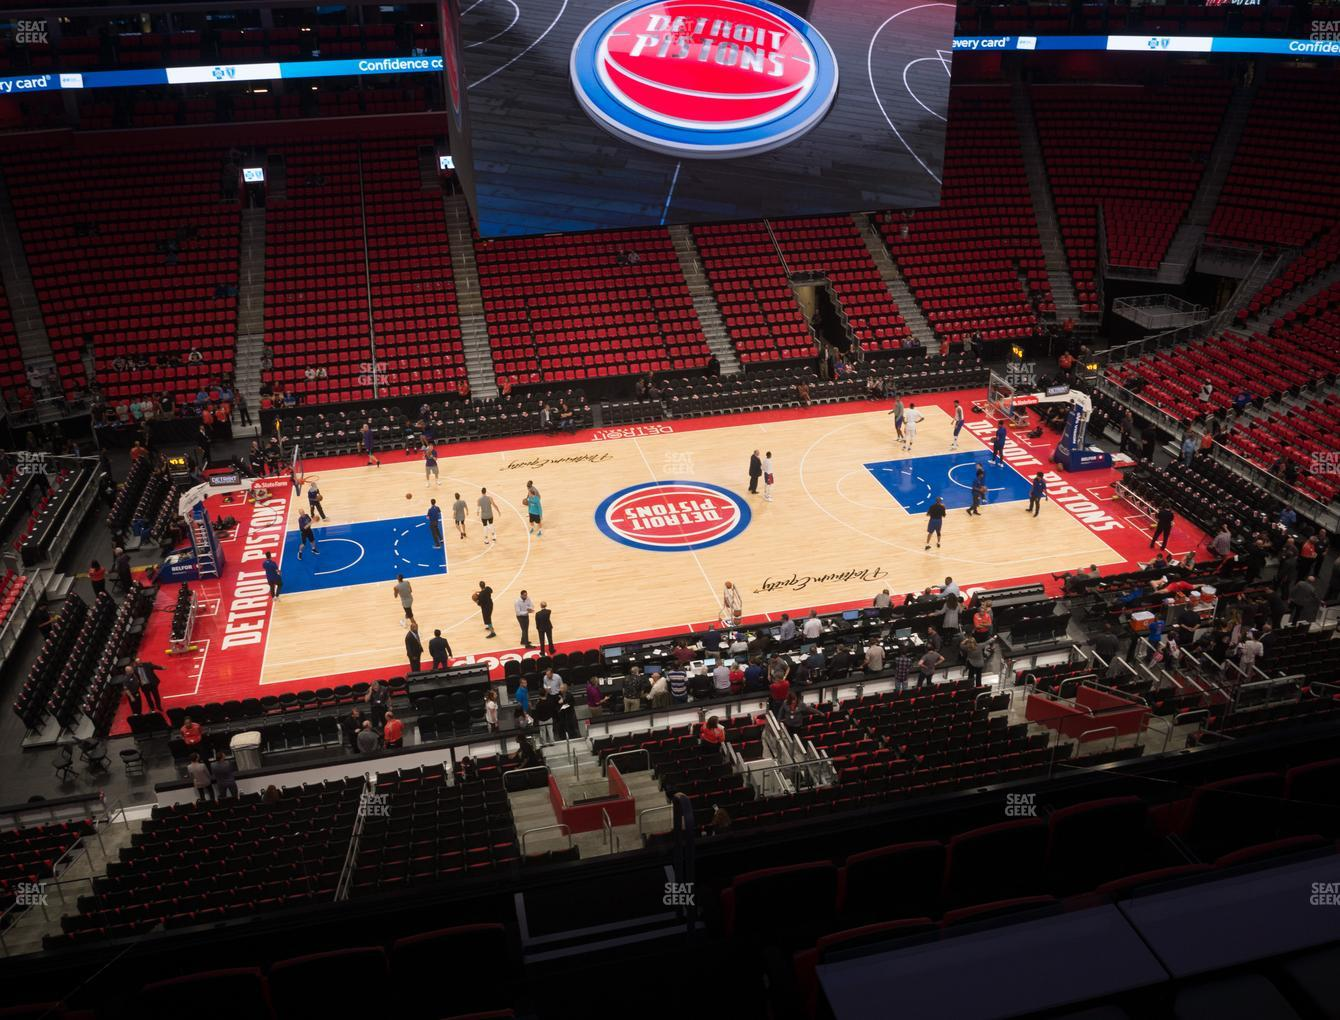 Detroit Pistons at Little Caesars Arena Drink Rail Mezzanine 29 View